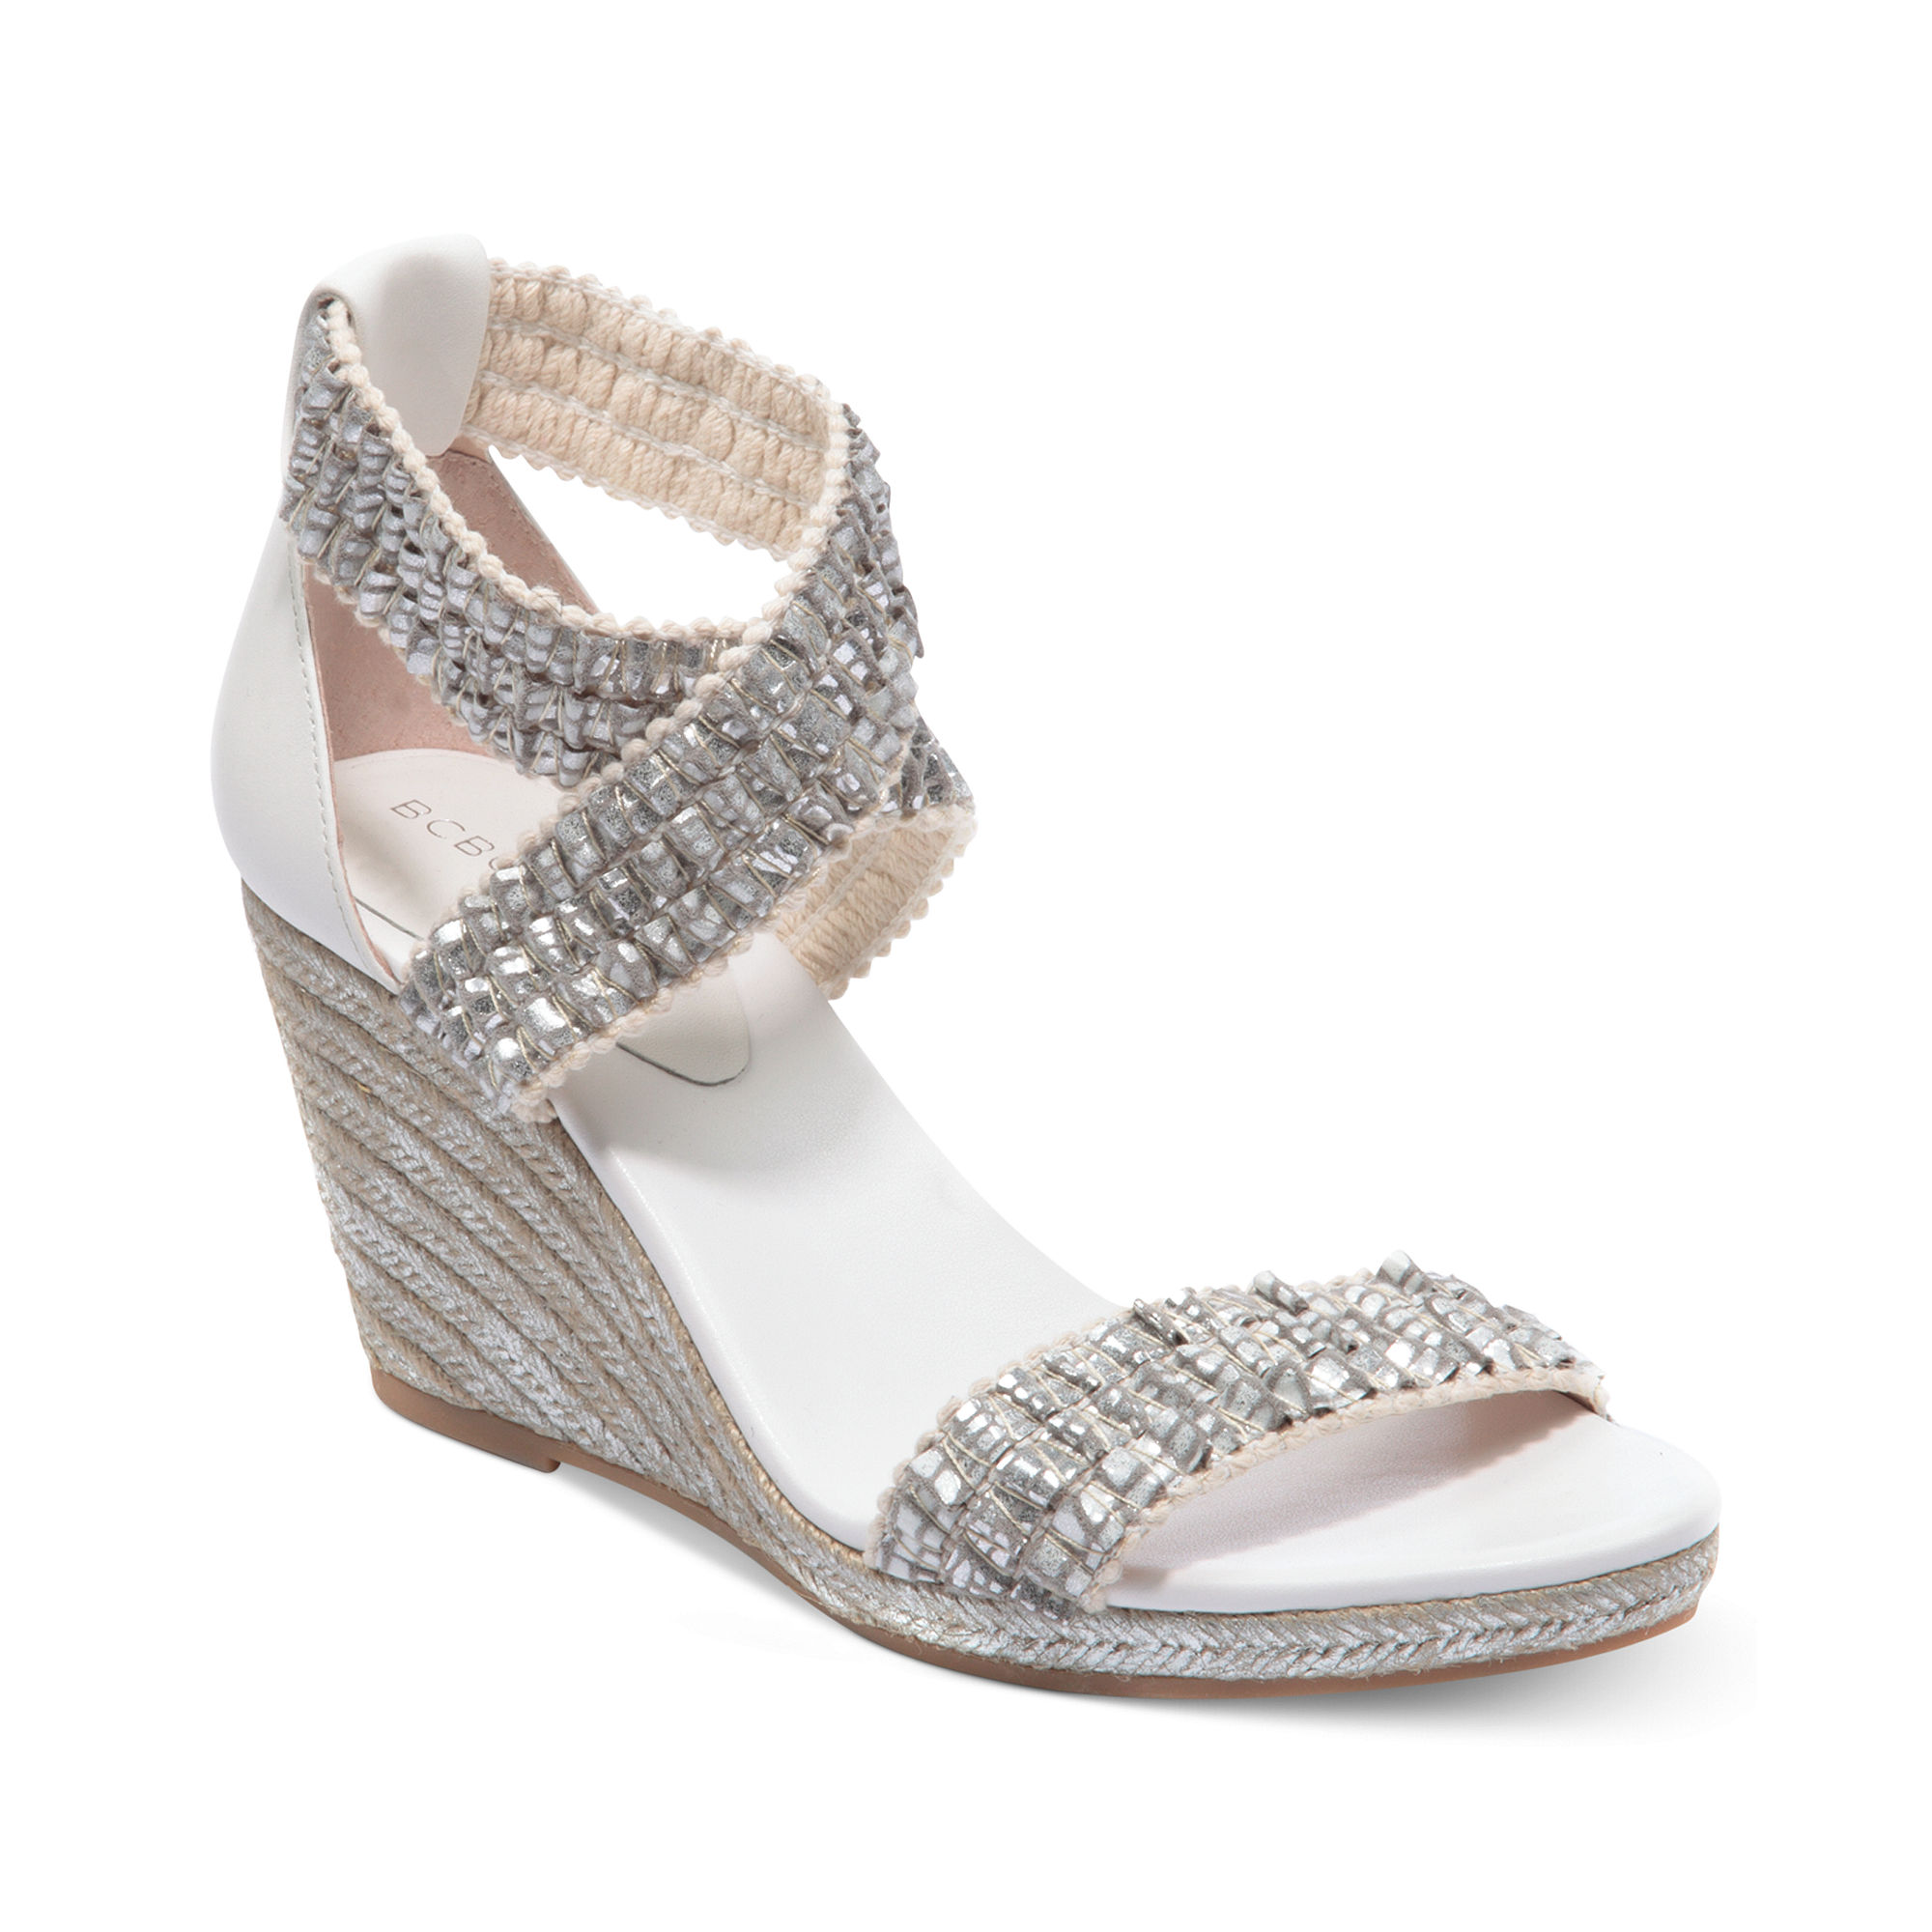 Find great deals on eBay for silver platform wedges. Shop with confidence.